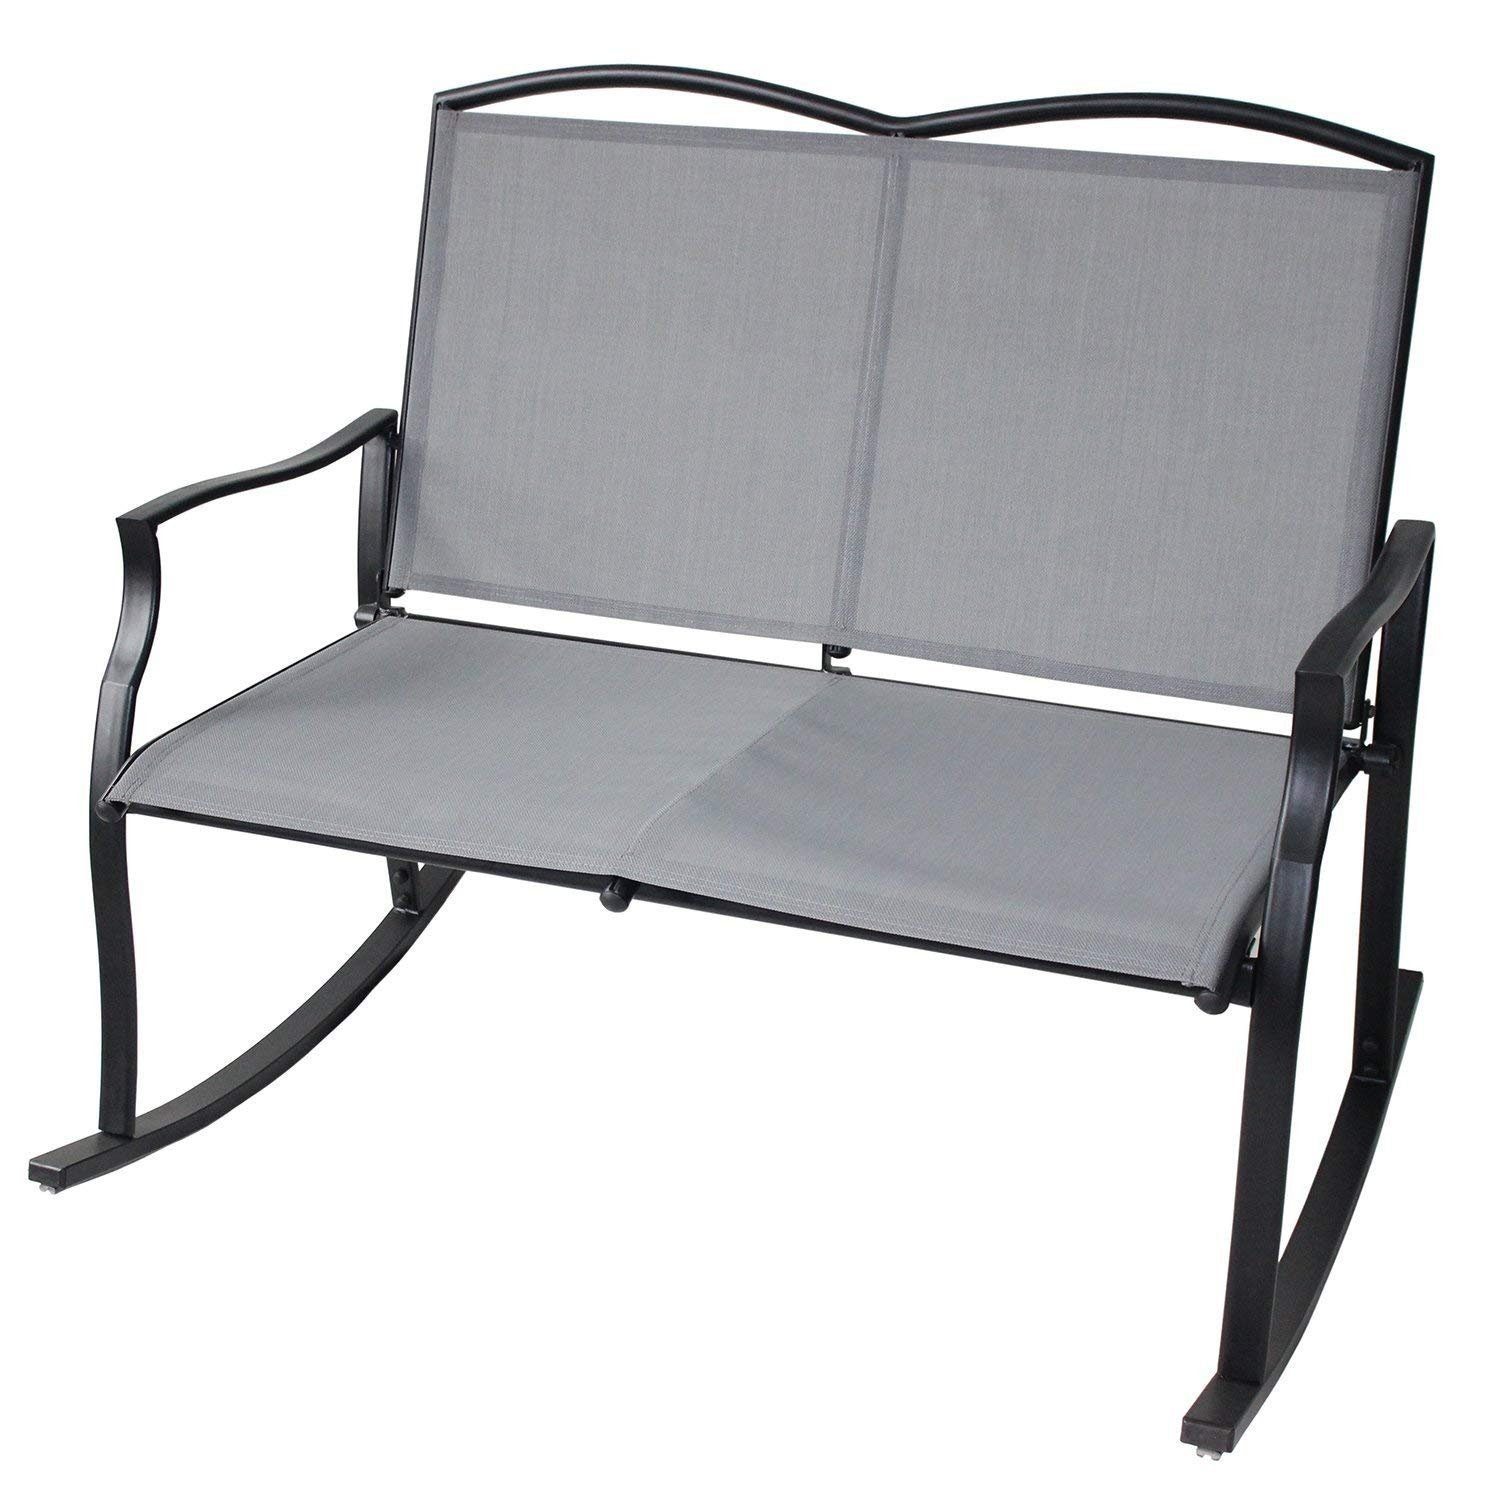 Tremendous Unicoo Patio Loveseat Bench Garden Loveseat Sling Rocking Chair Glider Swing Rocking Chair With Steel Frame For 2 Persons Andrewgaddart Wooden Chair Designs For Living Room Andrewgaddartcom